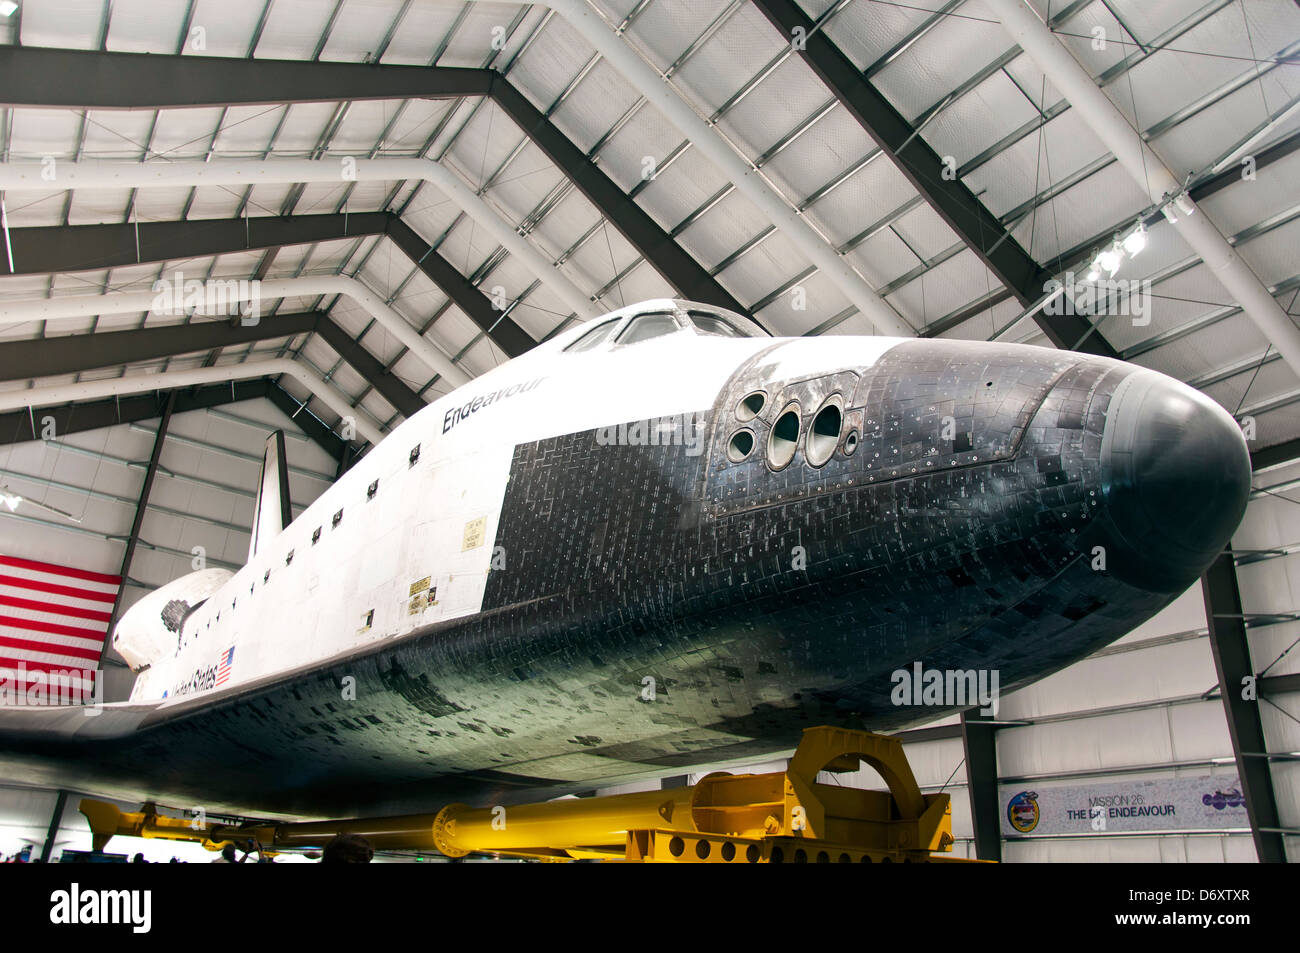 Space Shuttle Endeavour, California Science Center in Los Angeles. - Stock Image